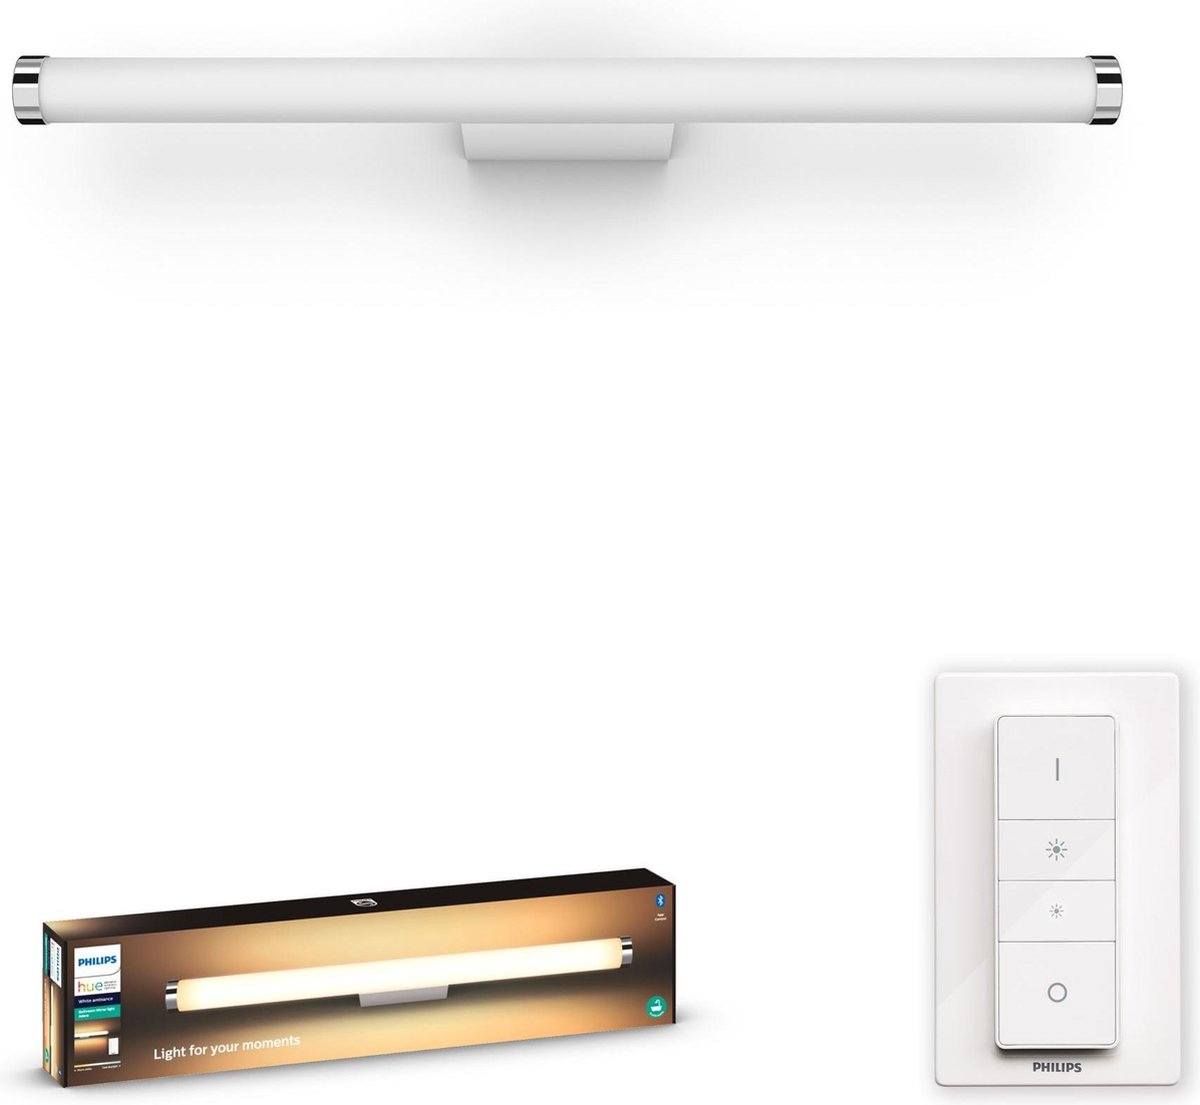 Philips Hue Adore Badkamer Wandlamp - White Ambiance - Geïntegreerd LED - Wit - 20W - Bluetooth - incl. Dimmer Switch